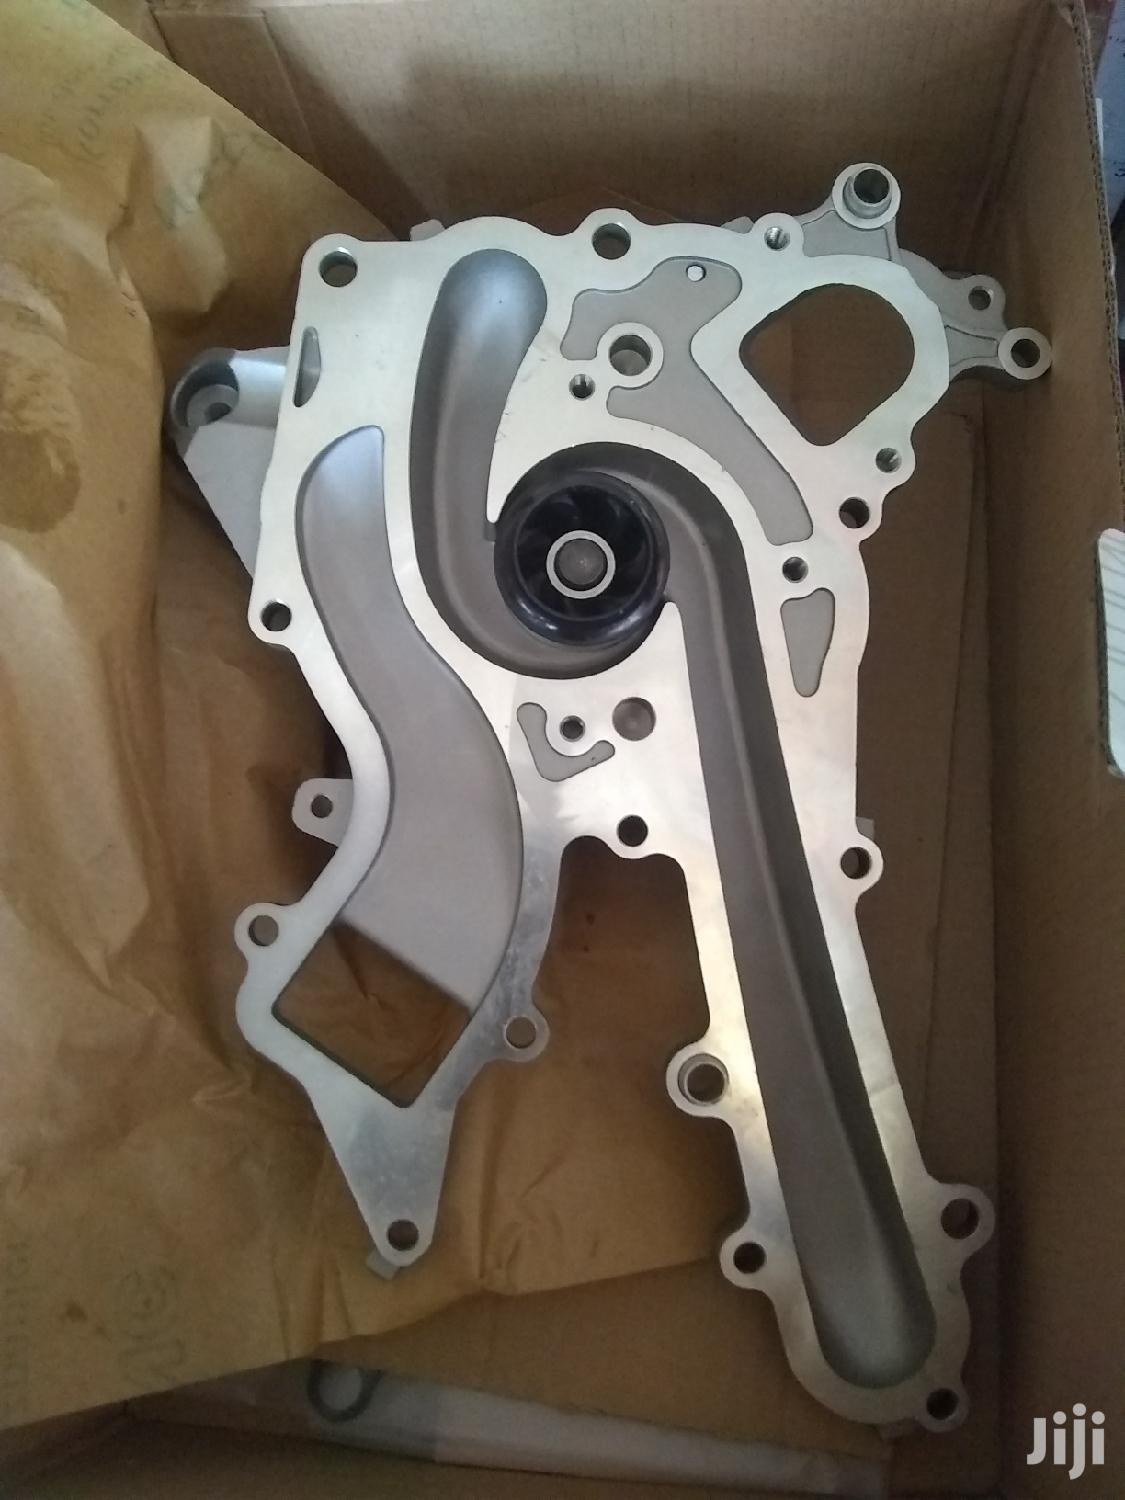 Mercedes Benz 276 Engine Water Pump | Vehicle Parts & Accessories for sale in Kokomlemle, Greater Accra, Ghana